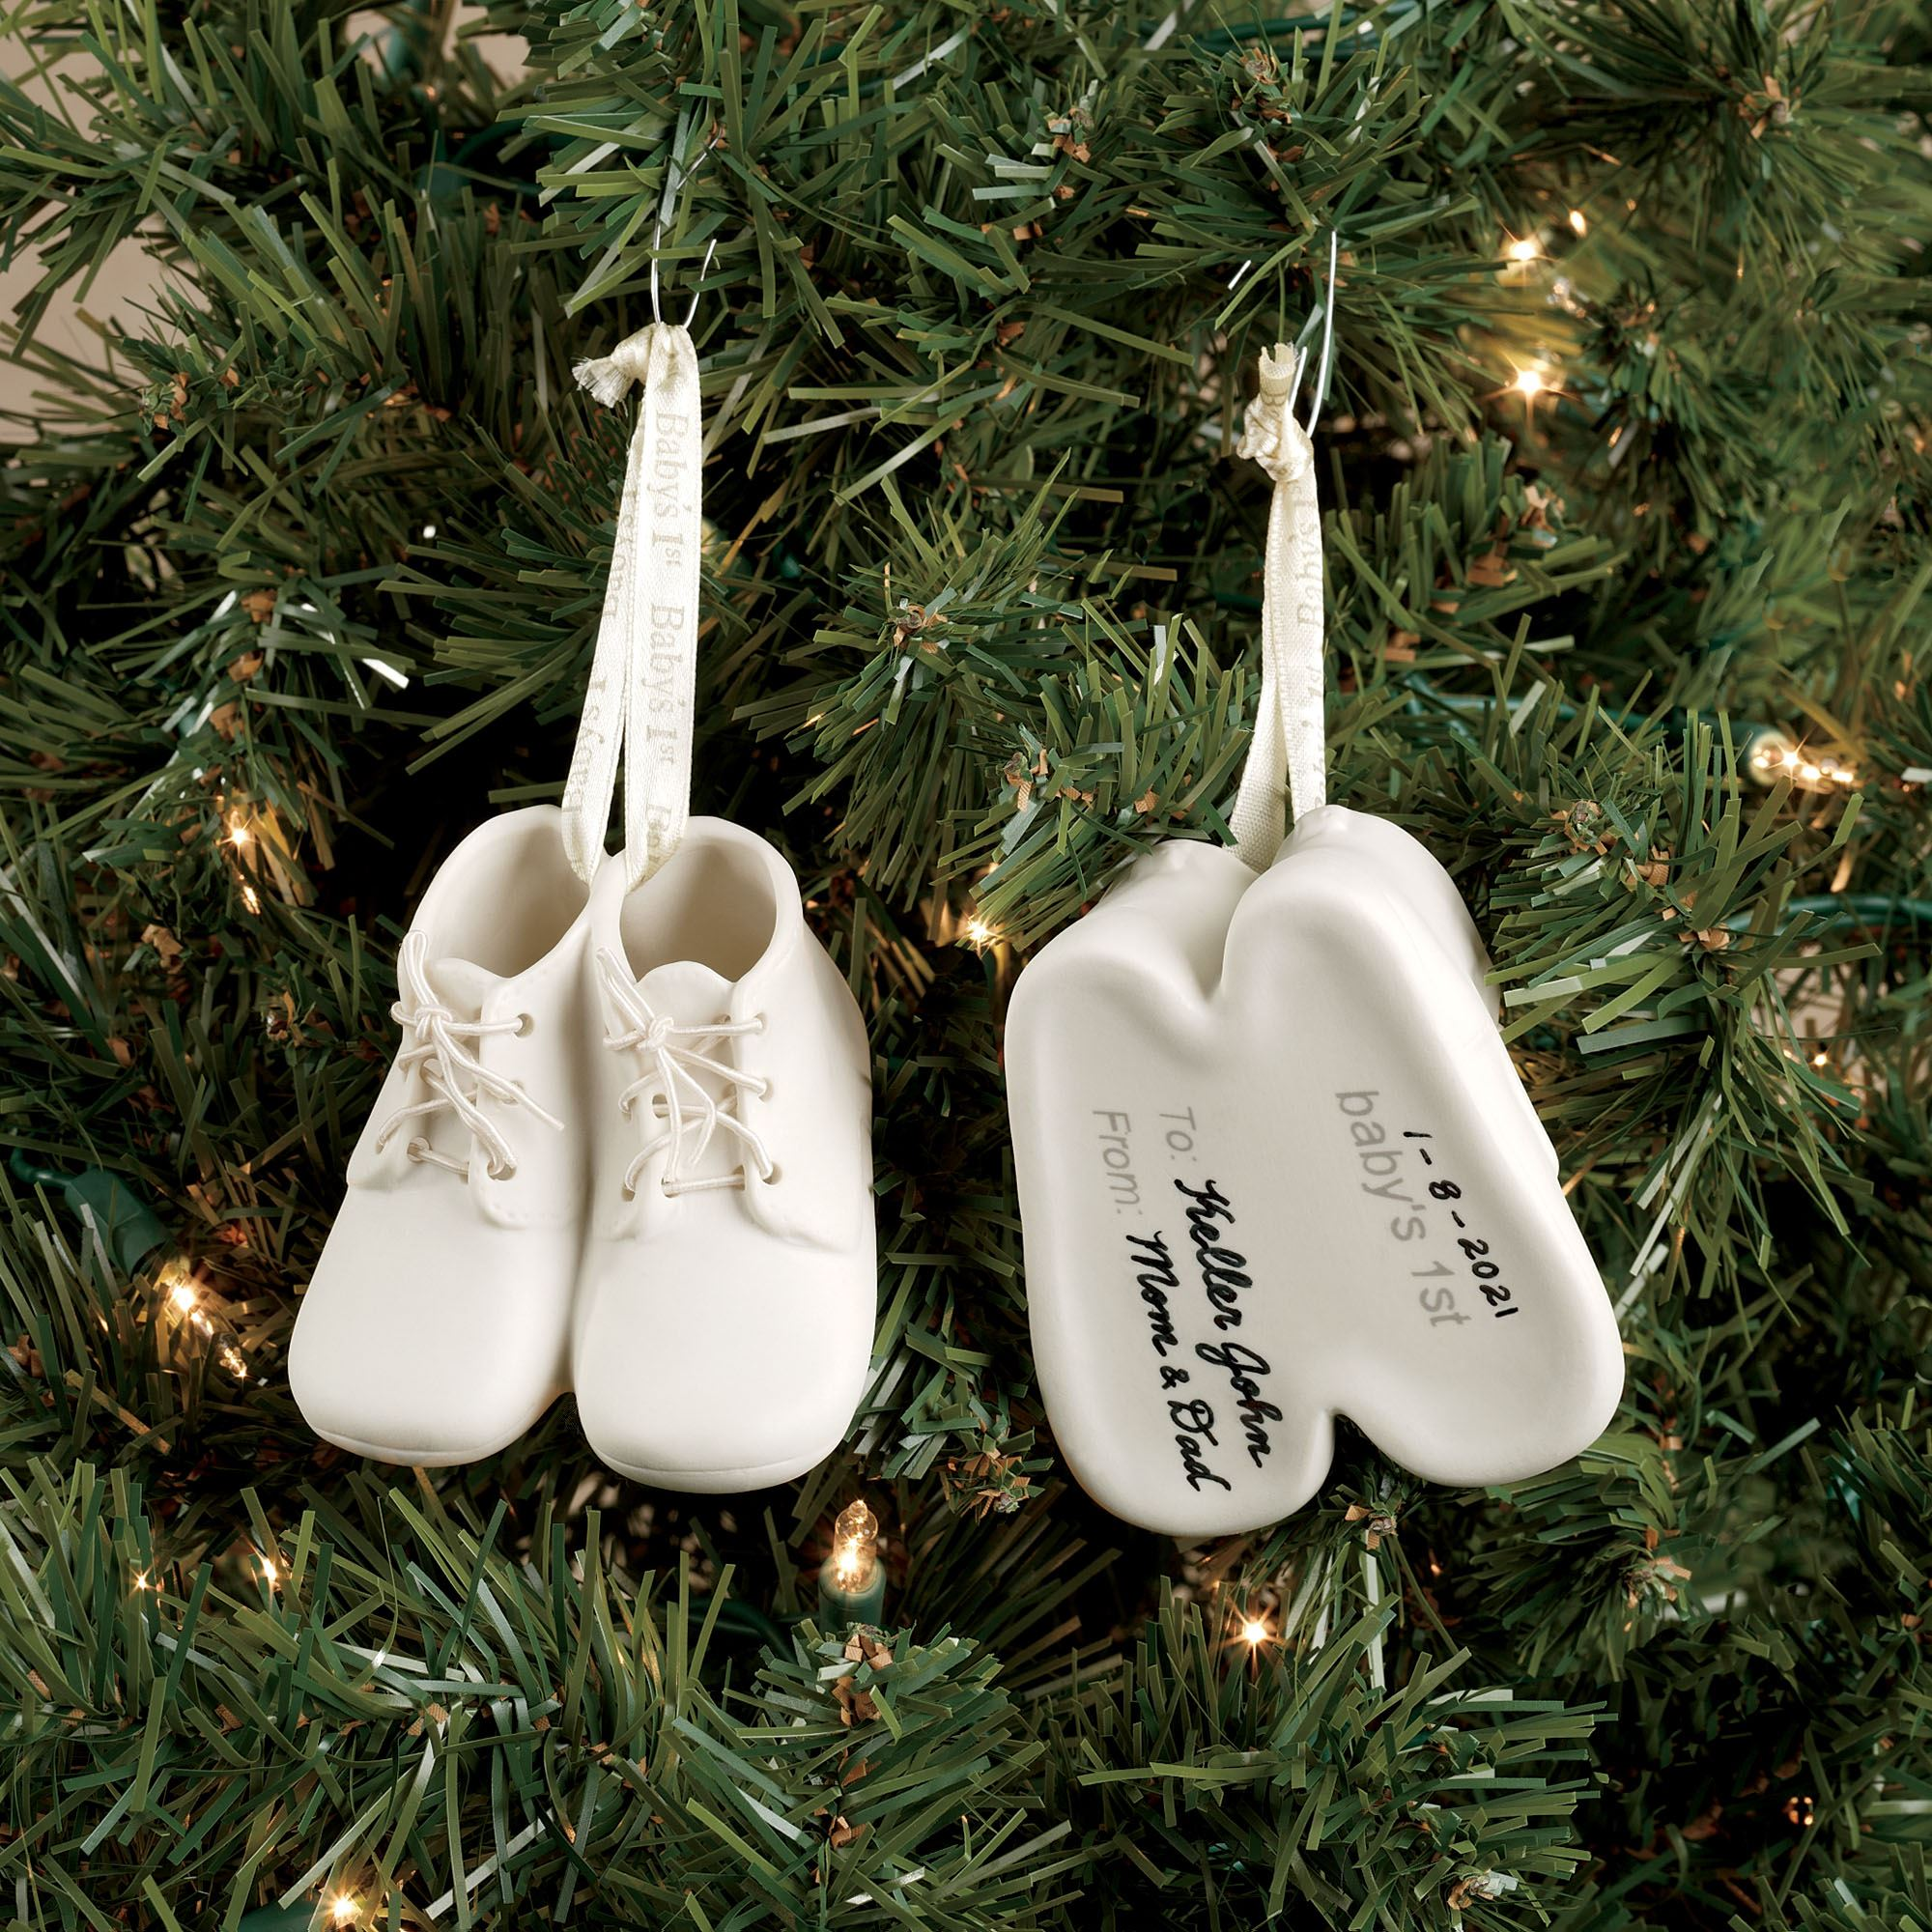 Baby First Christmas 2013 Ornament